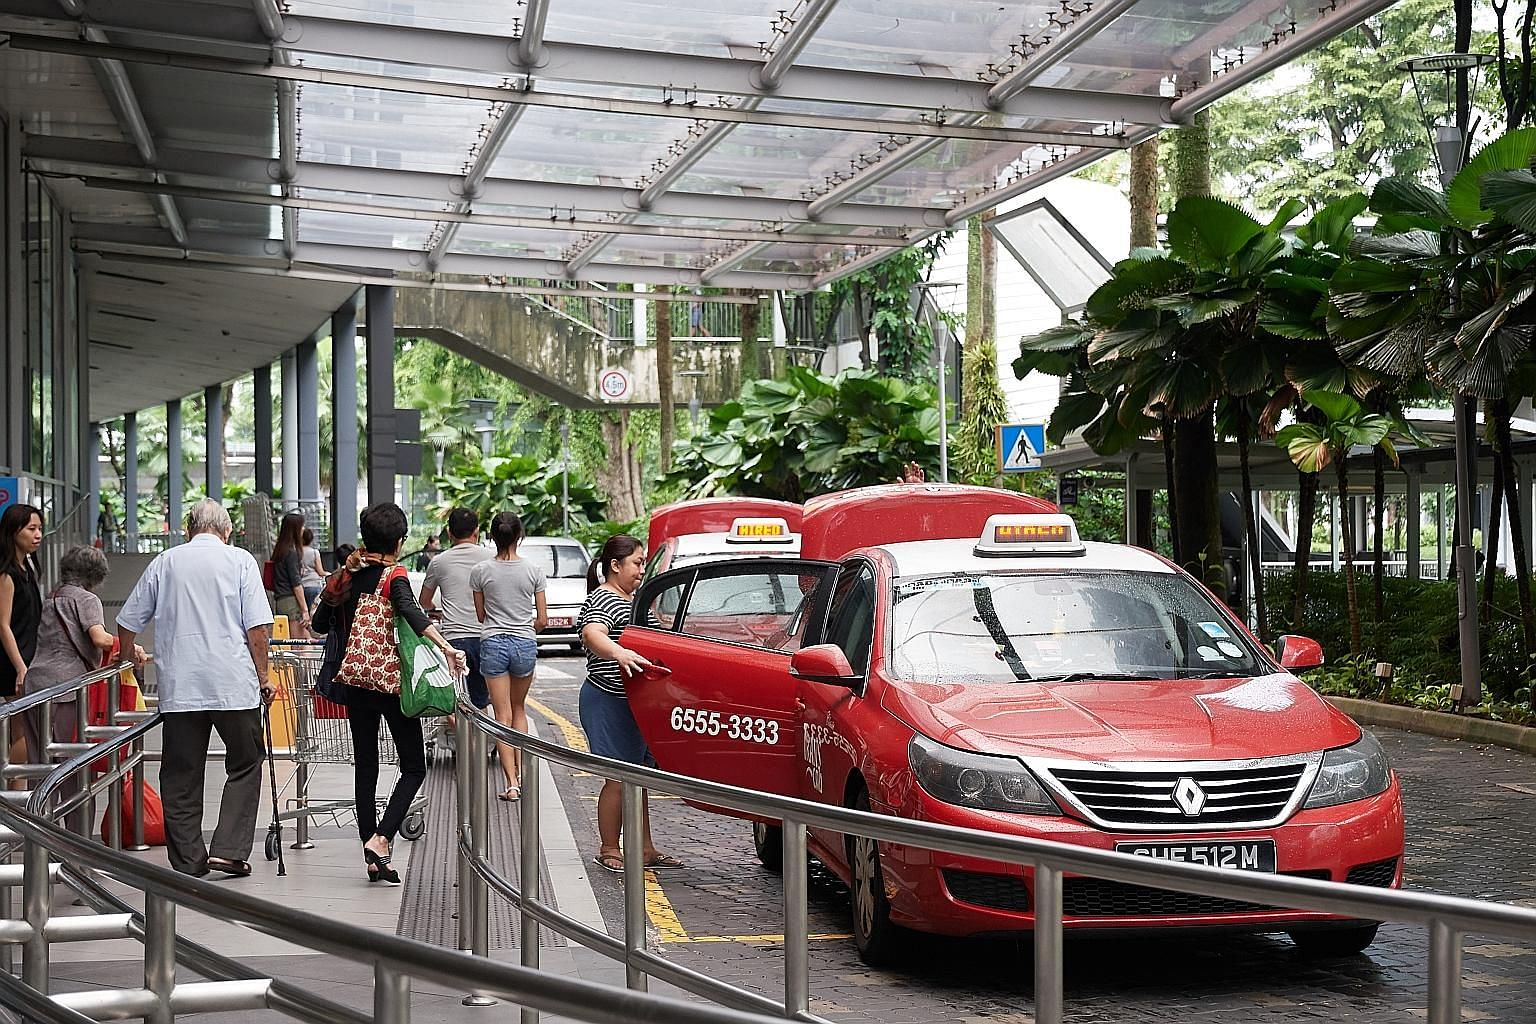 Figures provided to The Sunday Times by the Land Transport Authority show only 9 per cent of Singapore's taxi population was unhired in April, down from 12.5 per cent in January. Last year, the average unhired rate was 10.6 per cent.